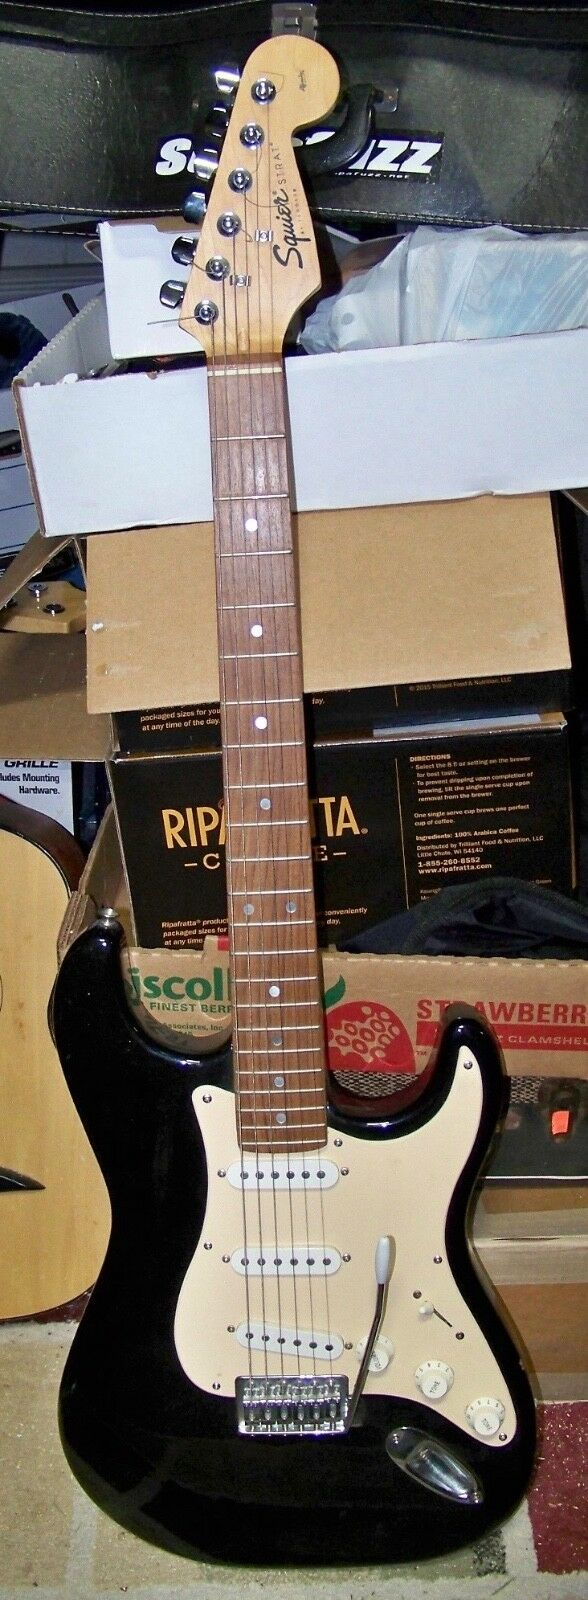 1997 Squier by Fender Stratocaster